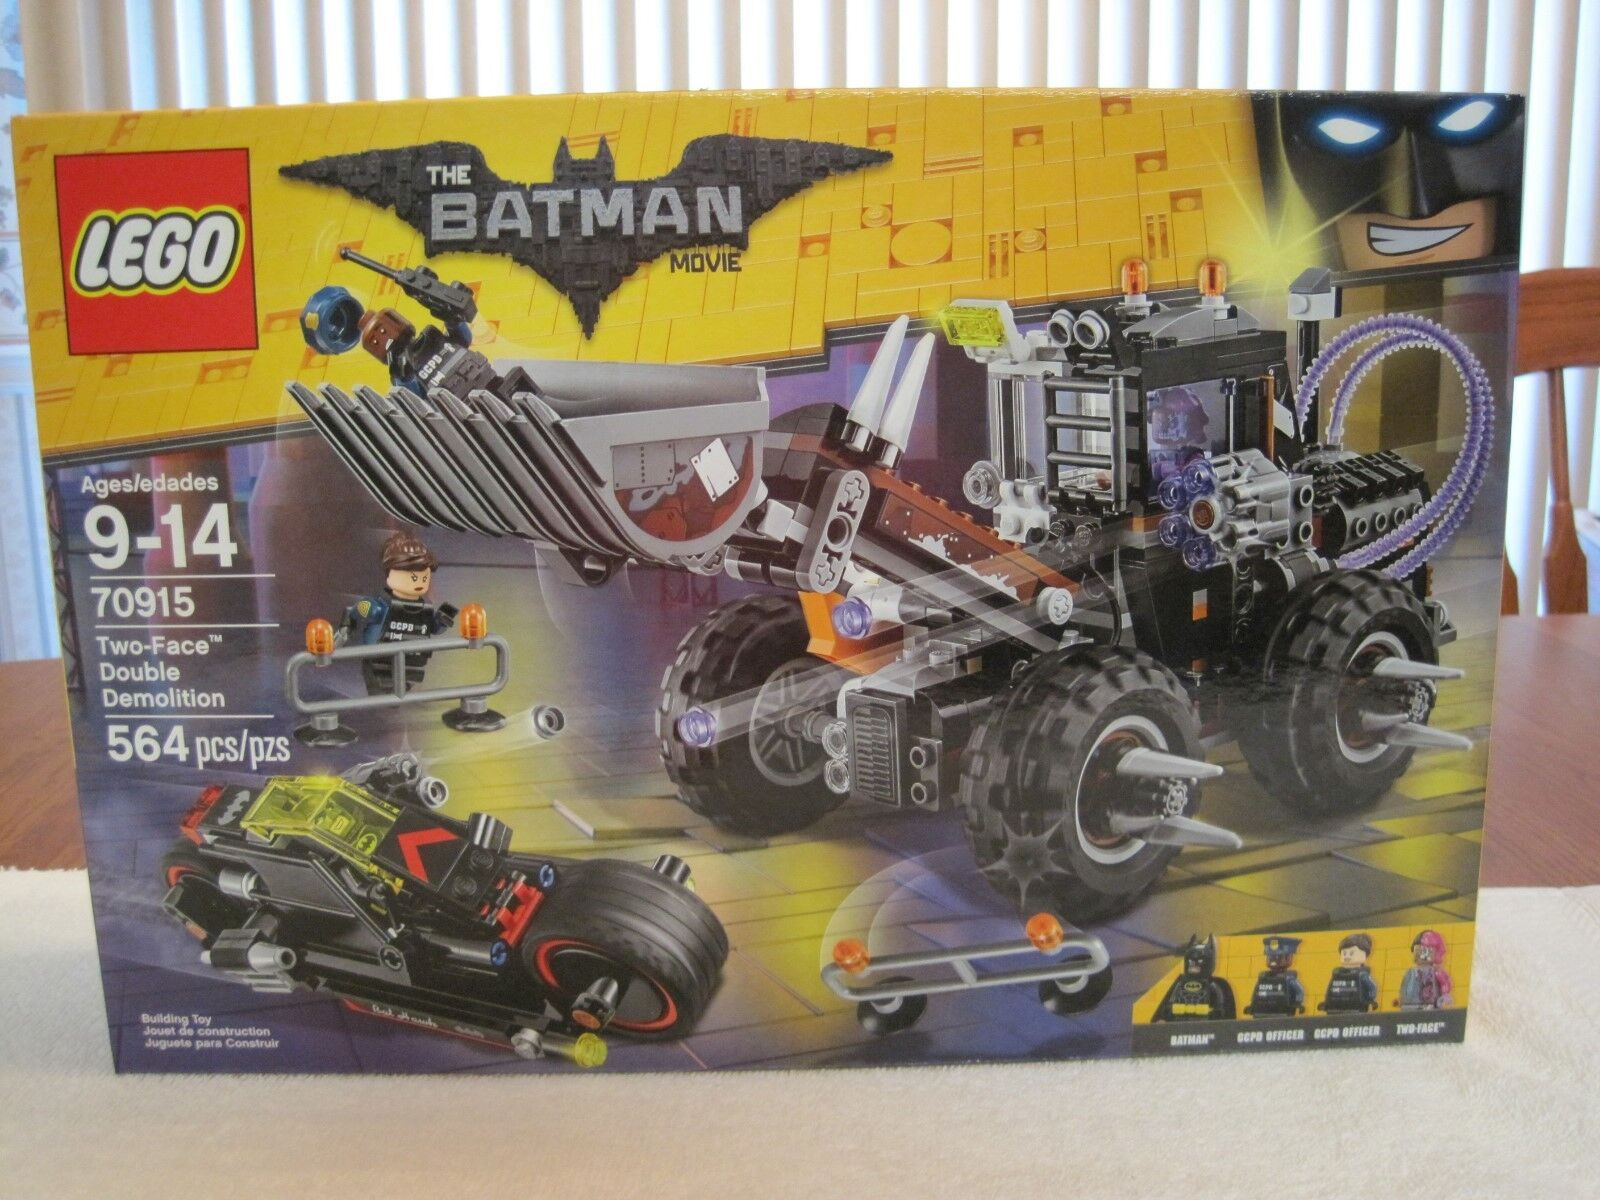 2017 LEGO THE BATMAN MOVIE TWO-FACE DOUBLE DEMOLITION--NEW-FACTORY SEALED